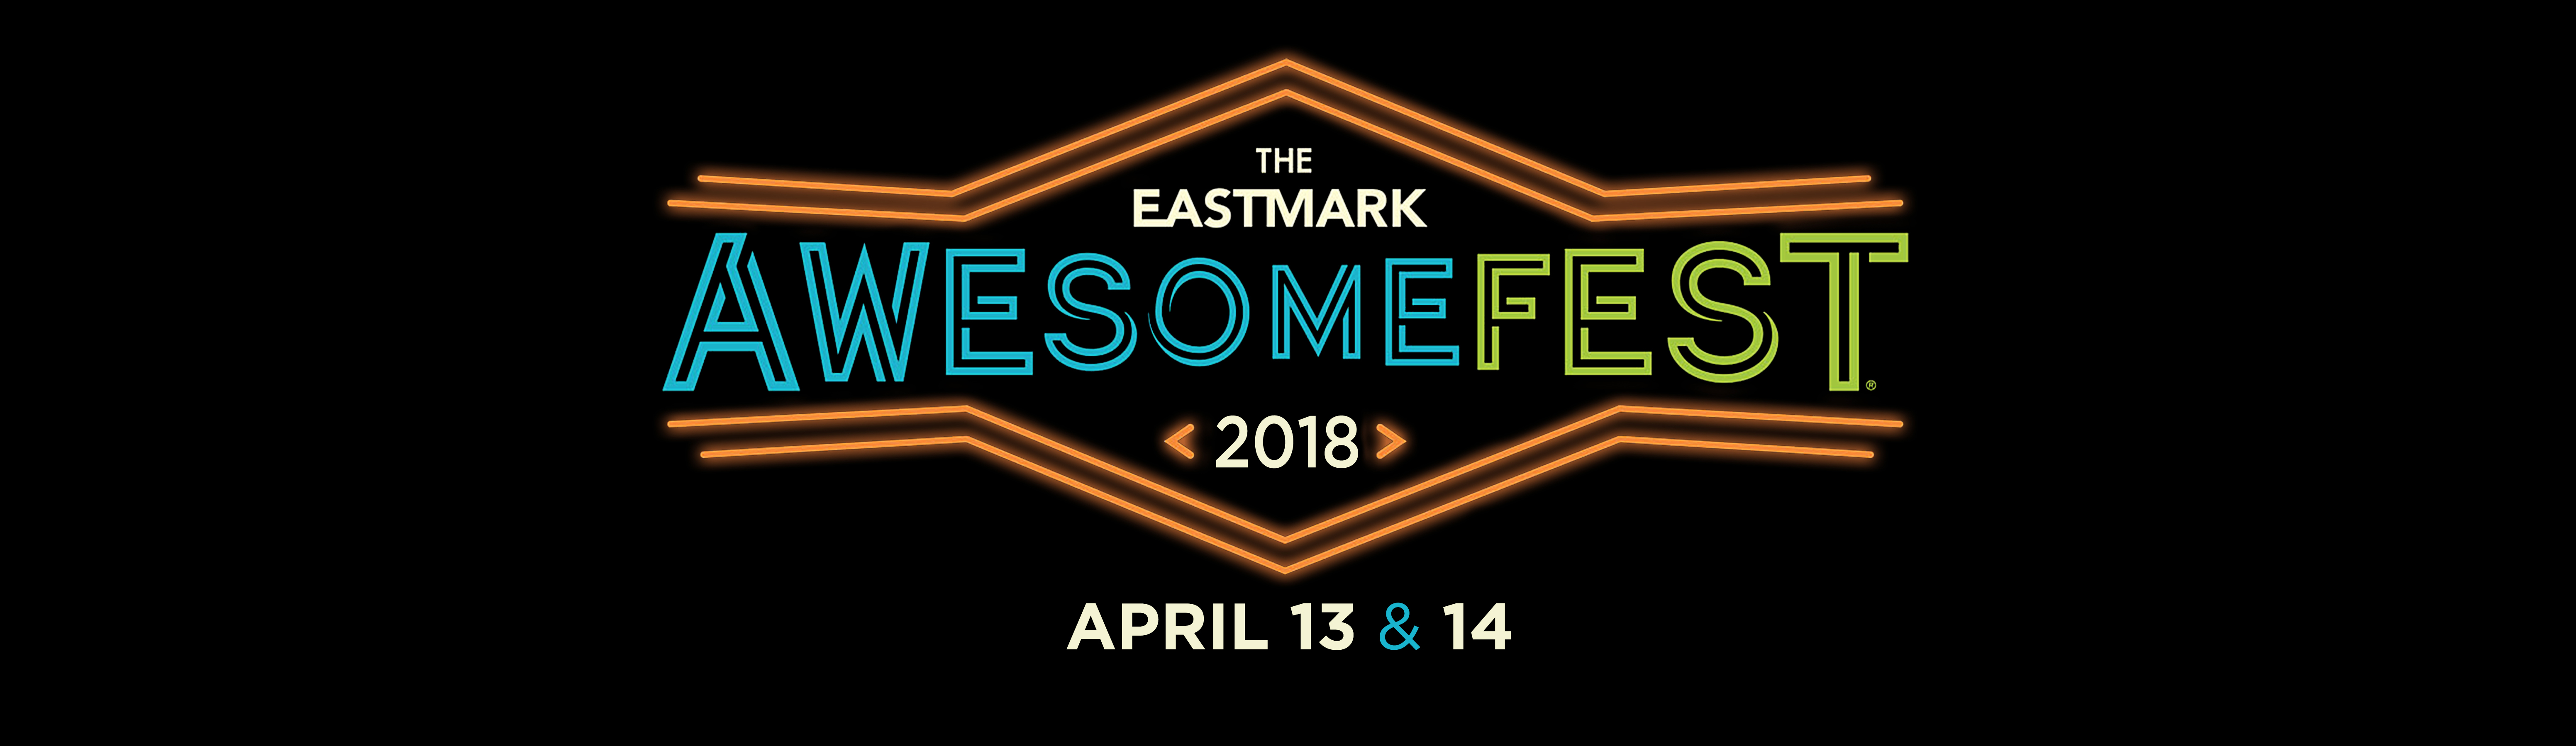 What to see and do at AwesomeFest 2018